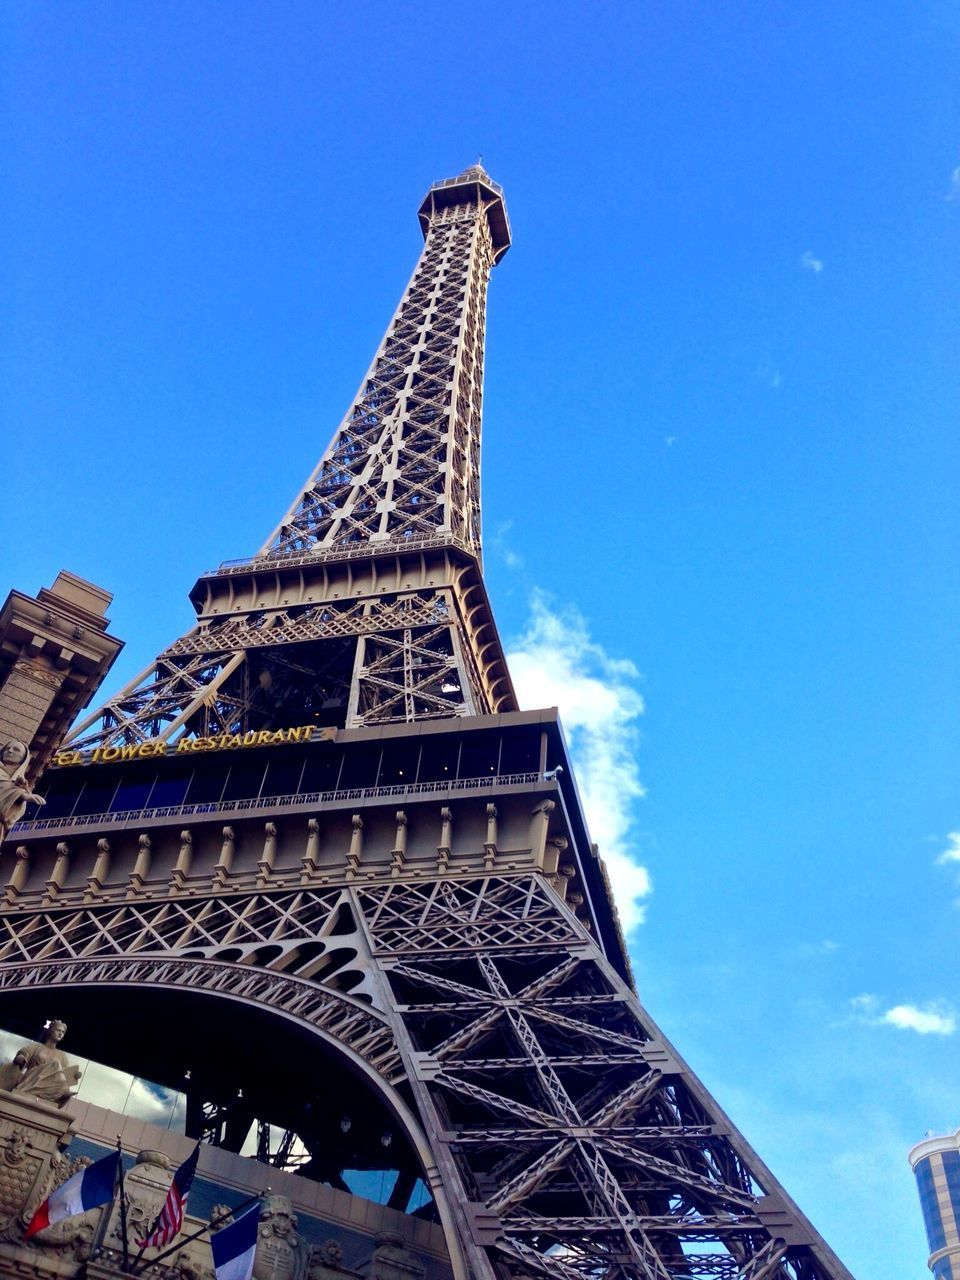 eiffel tower, architecture, famous place, built structure, international landmark, tower, low angle view, tourism, travel destinations, tall - high, capital cities, culture, travel, building exterior, blue, clear sky, history, architectural feature, metal, city